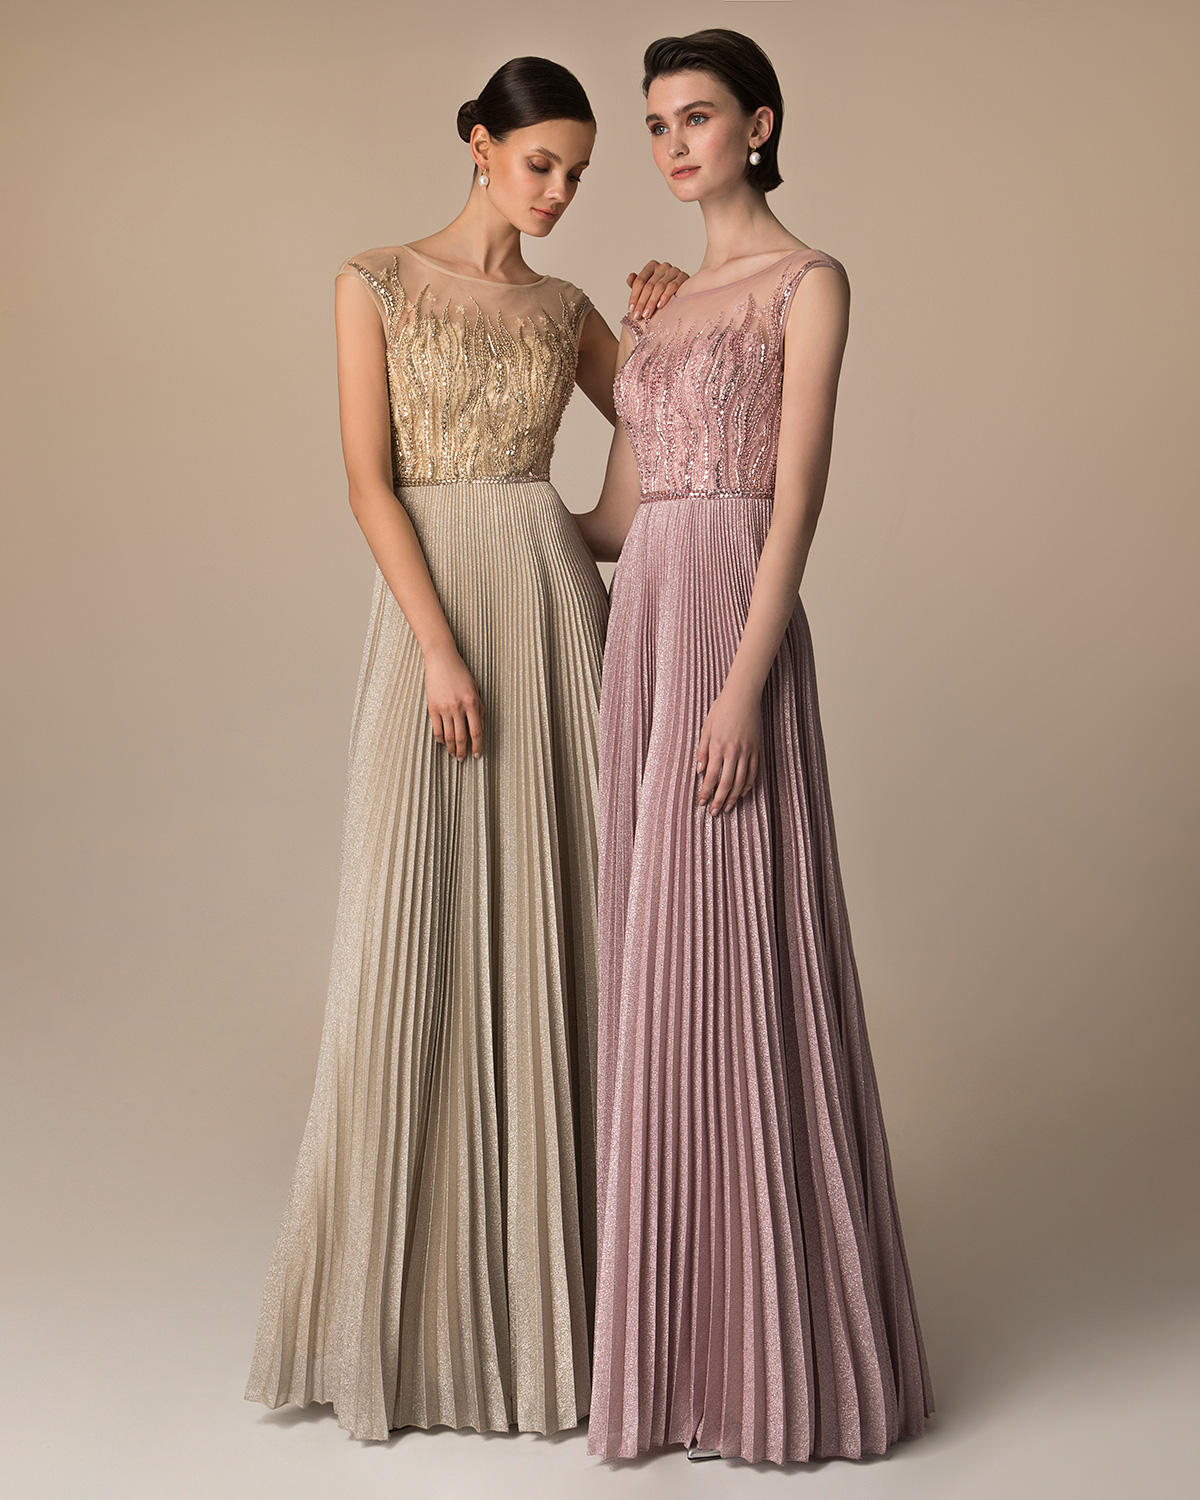 Long evening pleated dress with beaded top